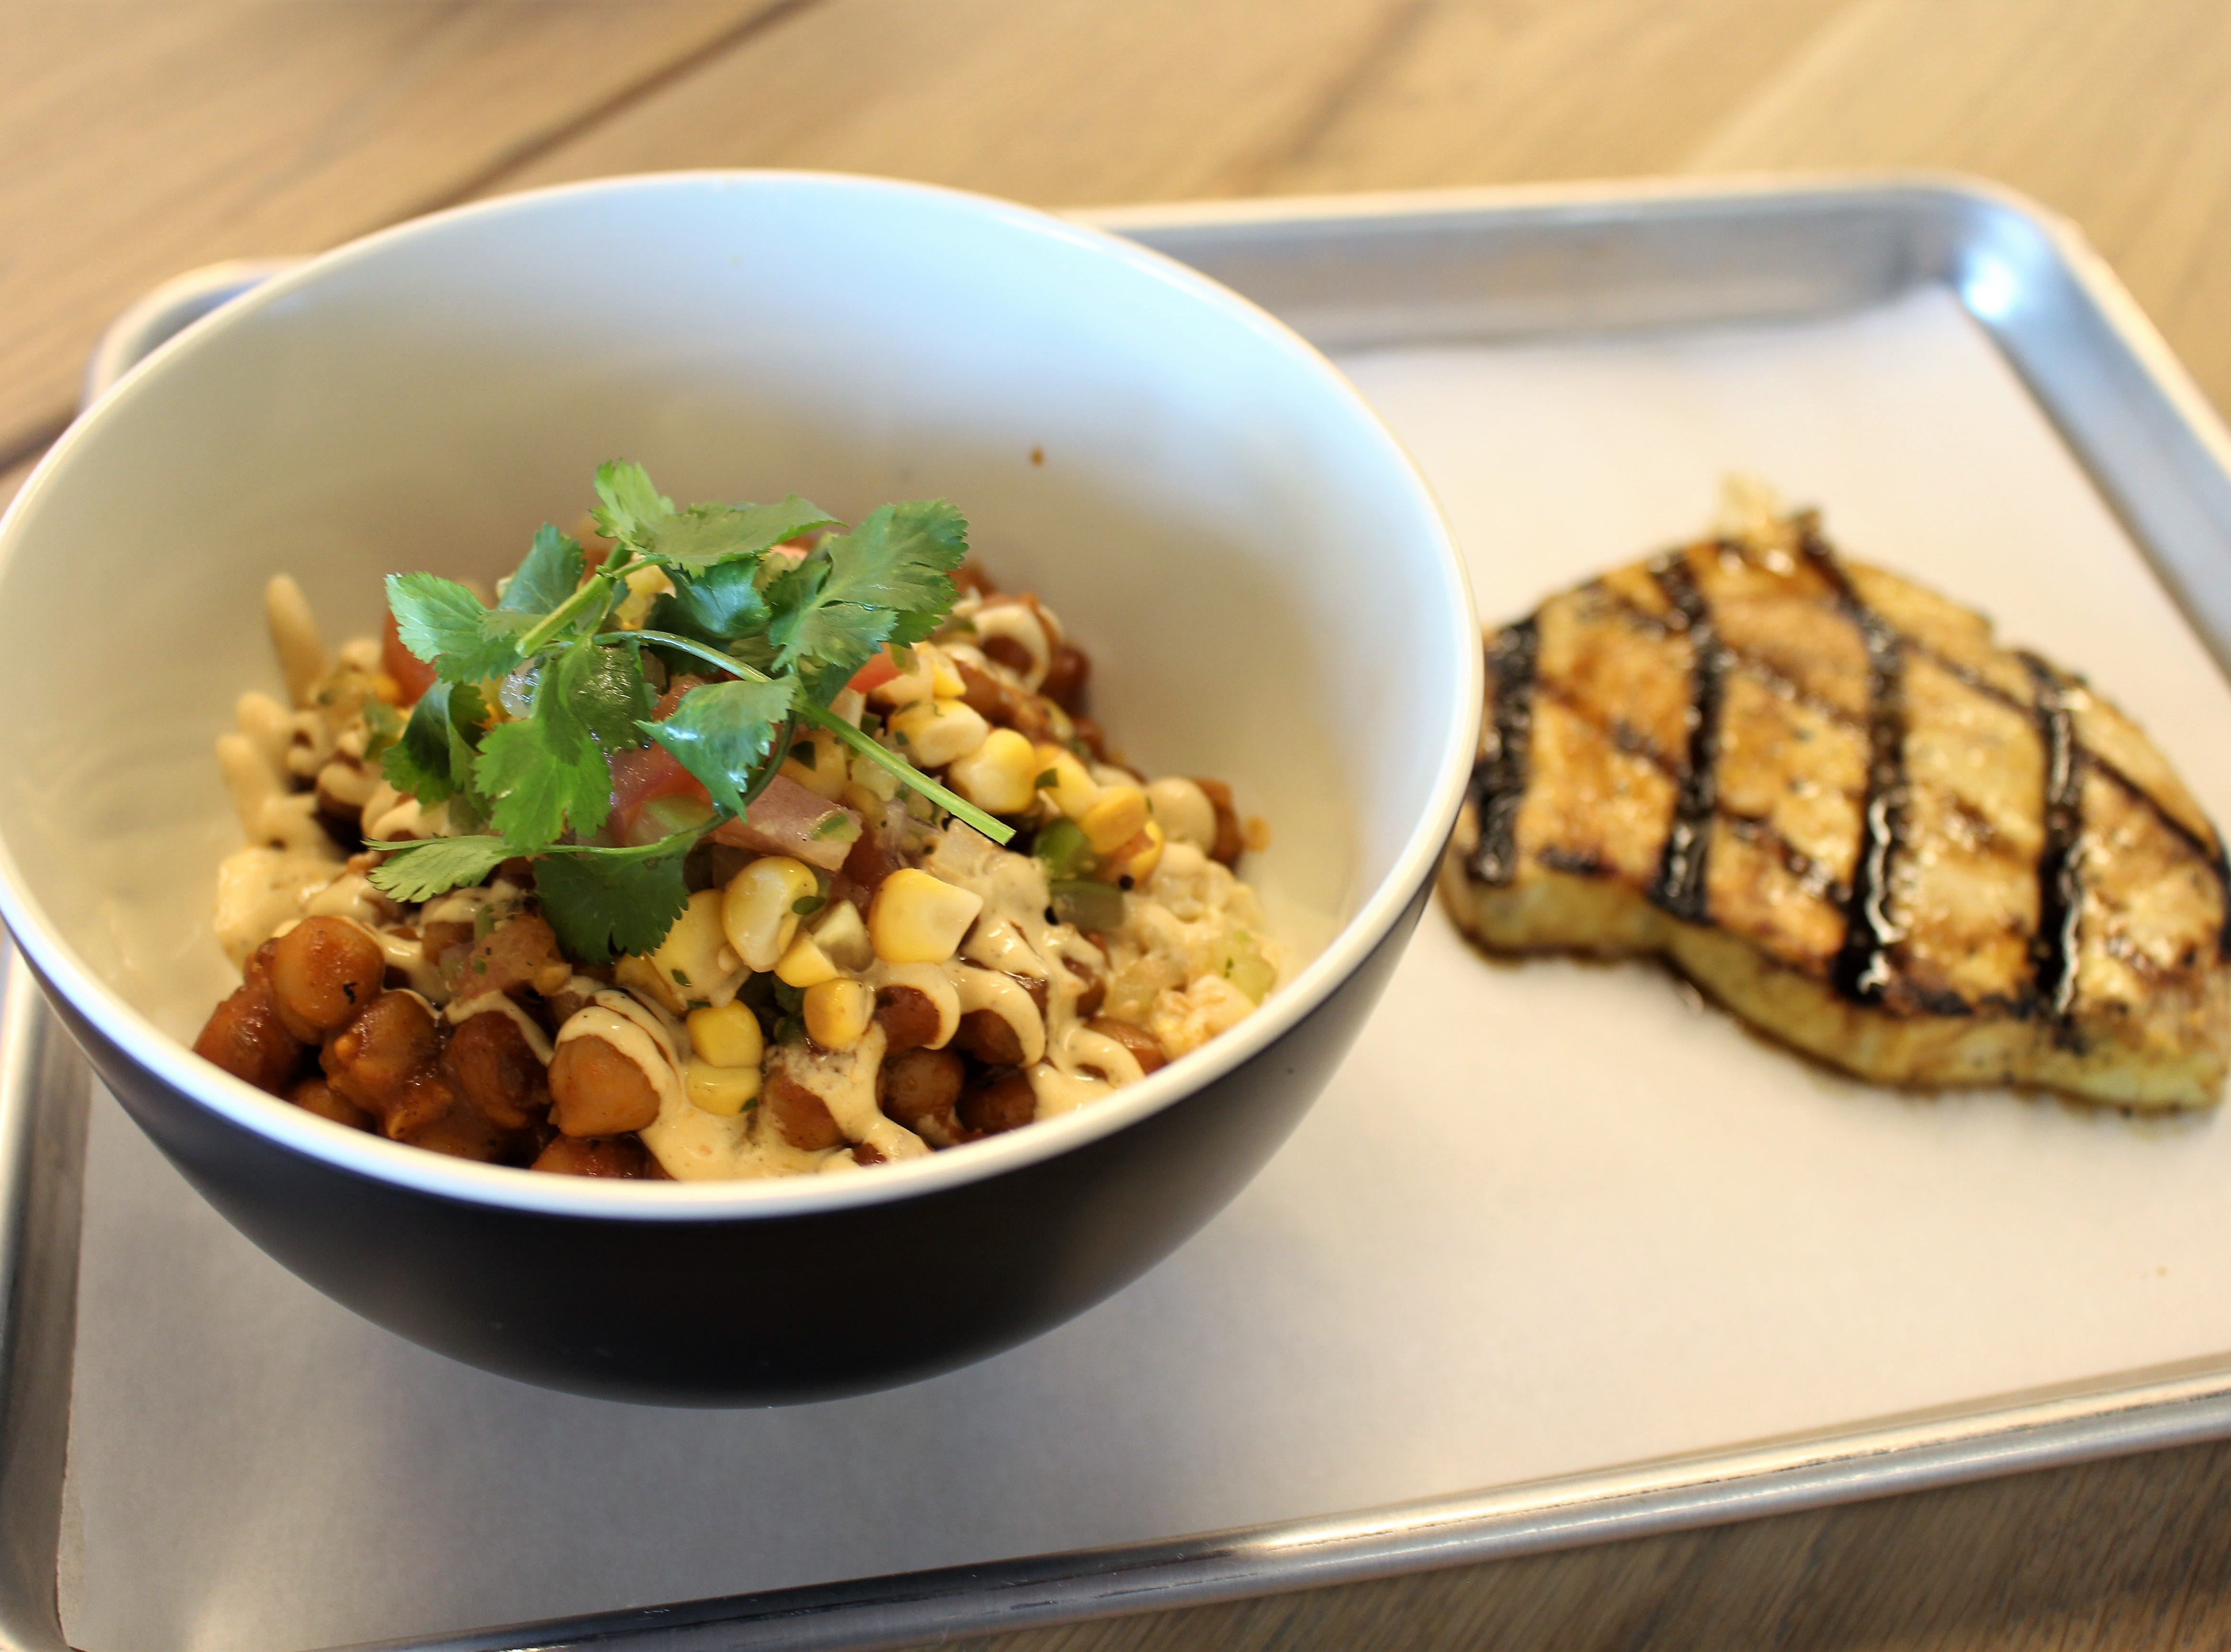 Chula Seafood at Uptown Plaza in Phoenix serves as expanded menu including a Brown Rice Bowl with a side of fresh-caught swordfish.